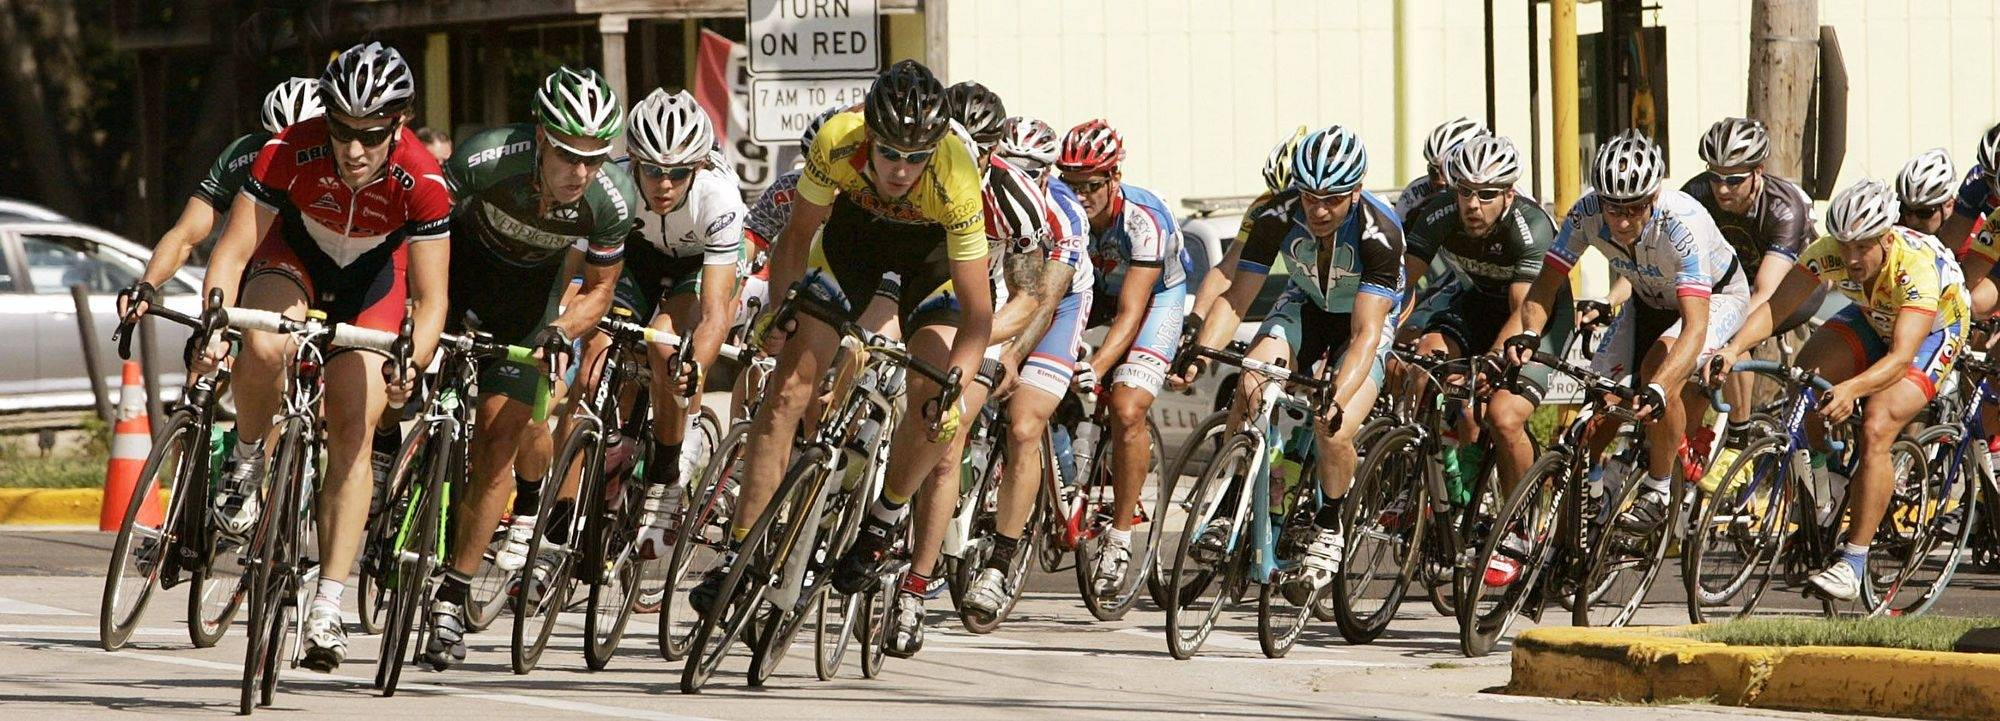 Cyclists hope Winfield Criterium draws attention to sport